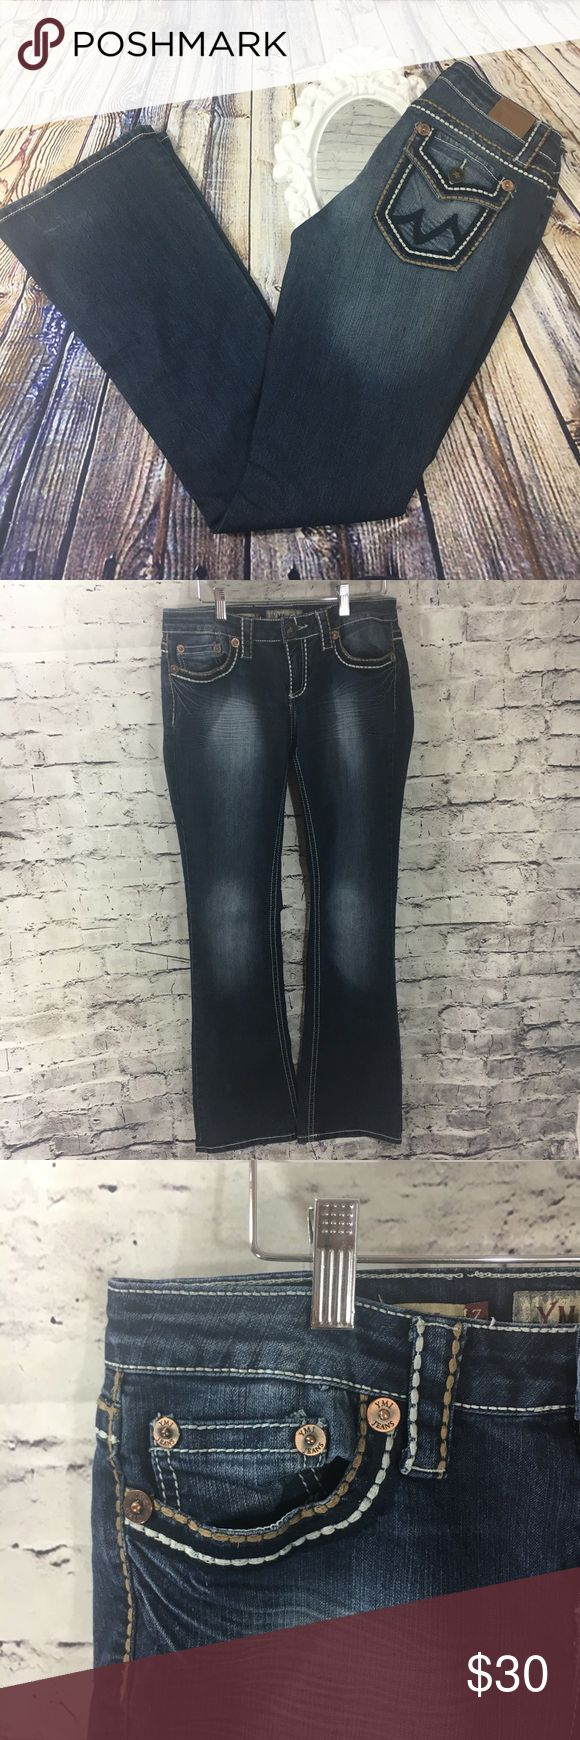 "YMI Jeans Boot Stitch and Pocket Detail Junior 7 YMI Jeans • Boot Cut • Style #P360736 • Back pocket flap embellishment detail • Junior Size 7 • 74% Cotton, 24% Polyester, 2% Spandex • Waist-30"", Rise-8"", Backrise-13"", Inseam-33"", Leg opening-9"" YMI Jeans Boot Cut"